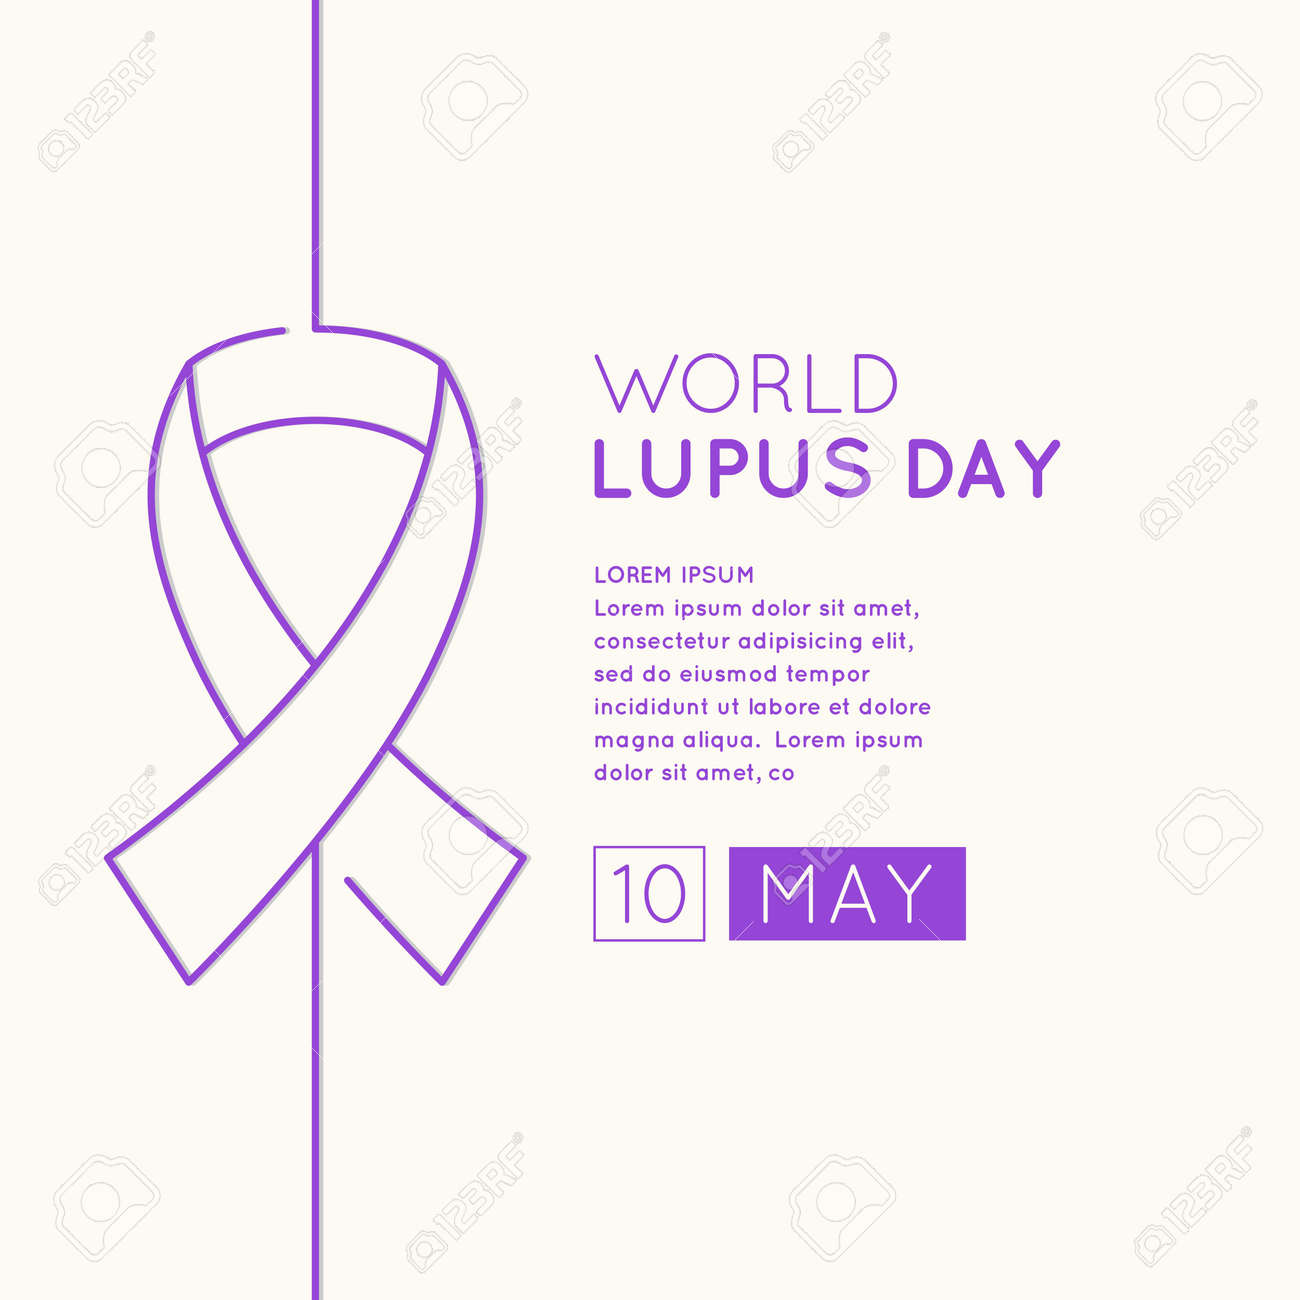 Poster of the world day of struggle with lupus the inscription poster of the world day of struggle with lupus the inscription lupus day may biocorpaavc Image collections